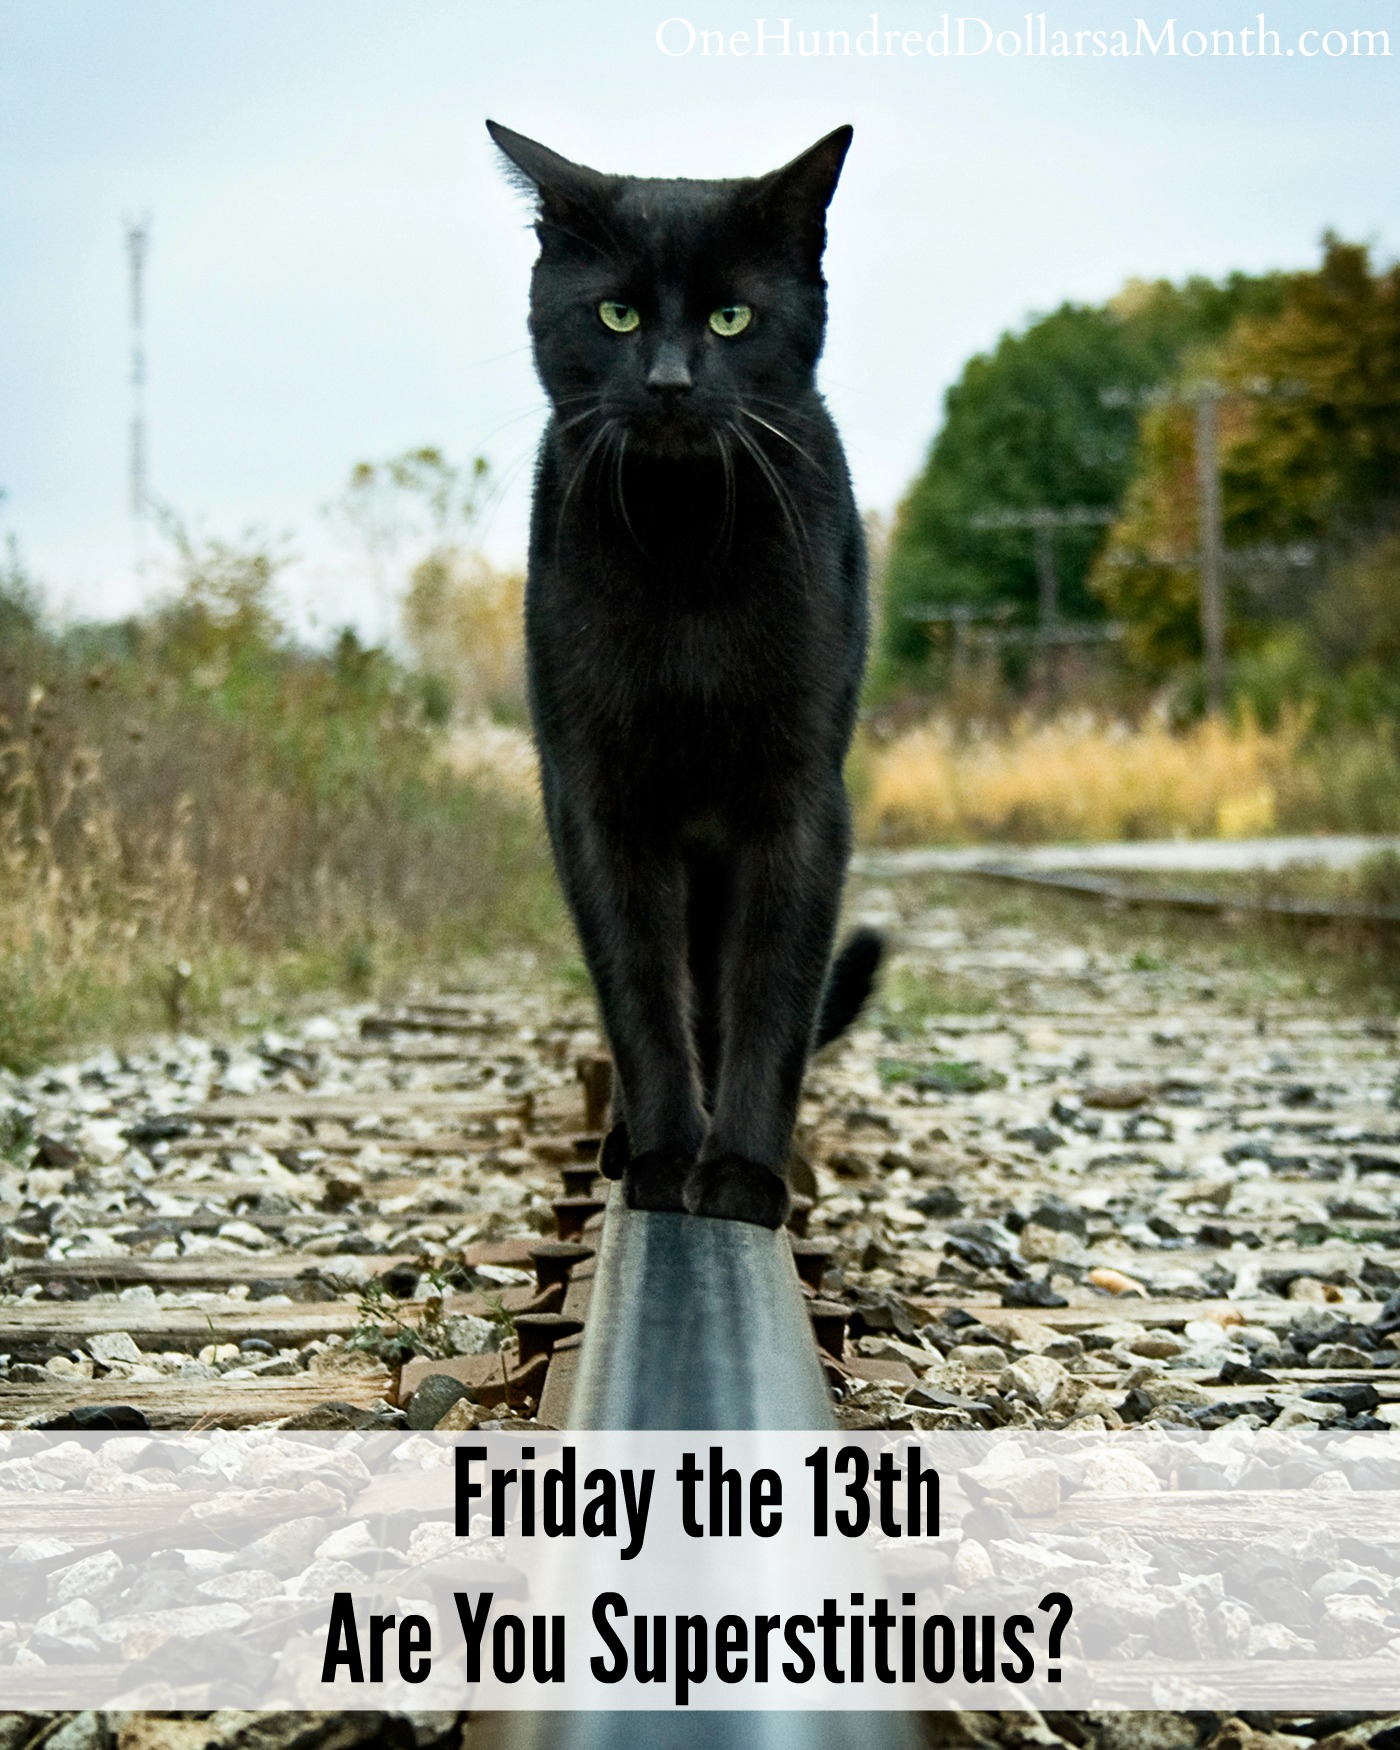 Friday the 13th – Are You Superstitious?